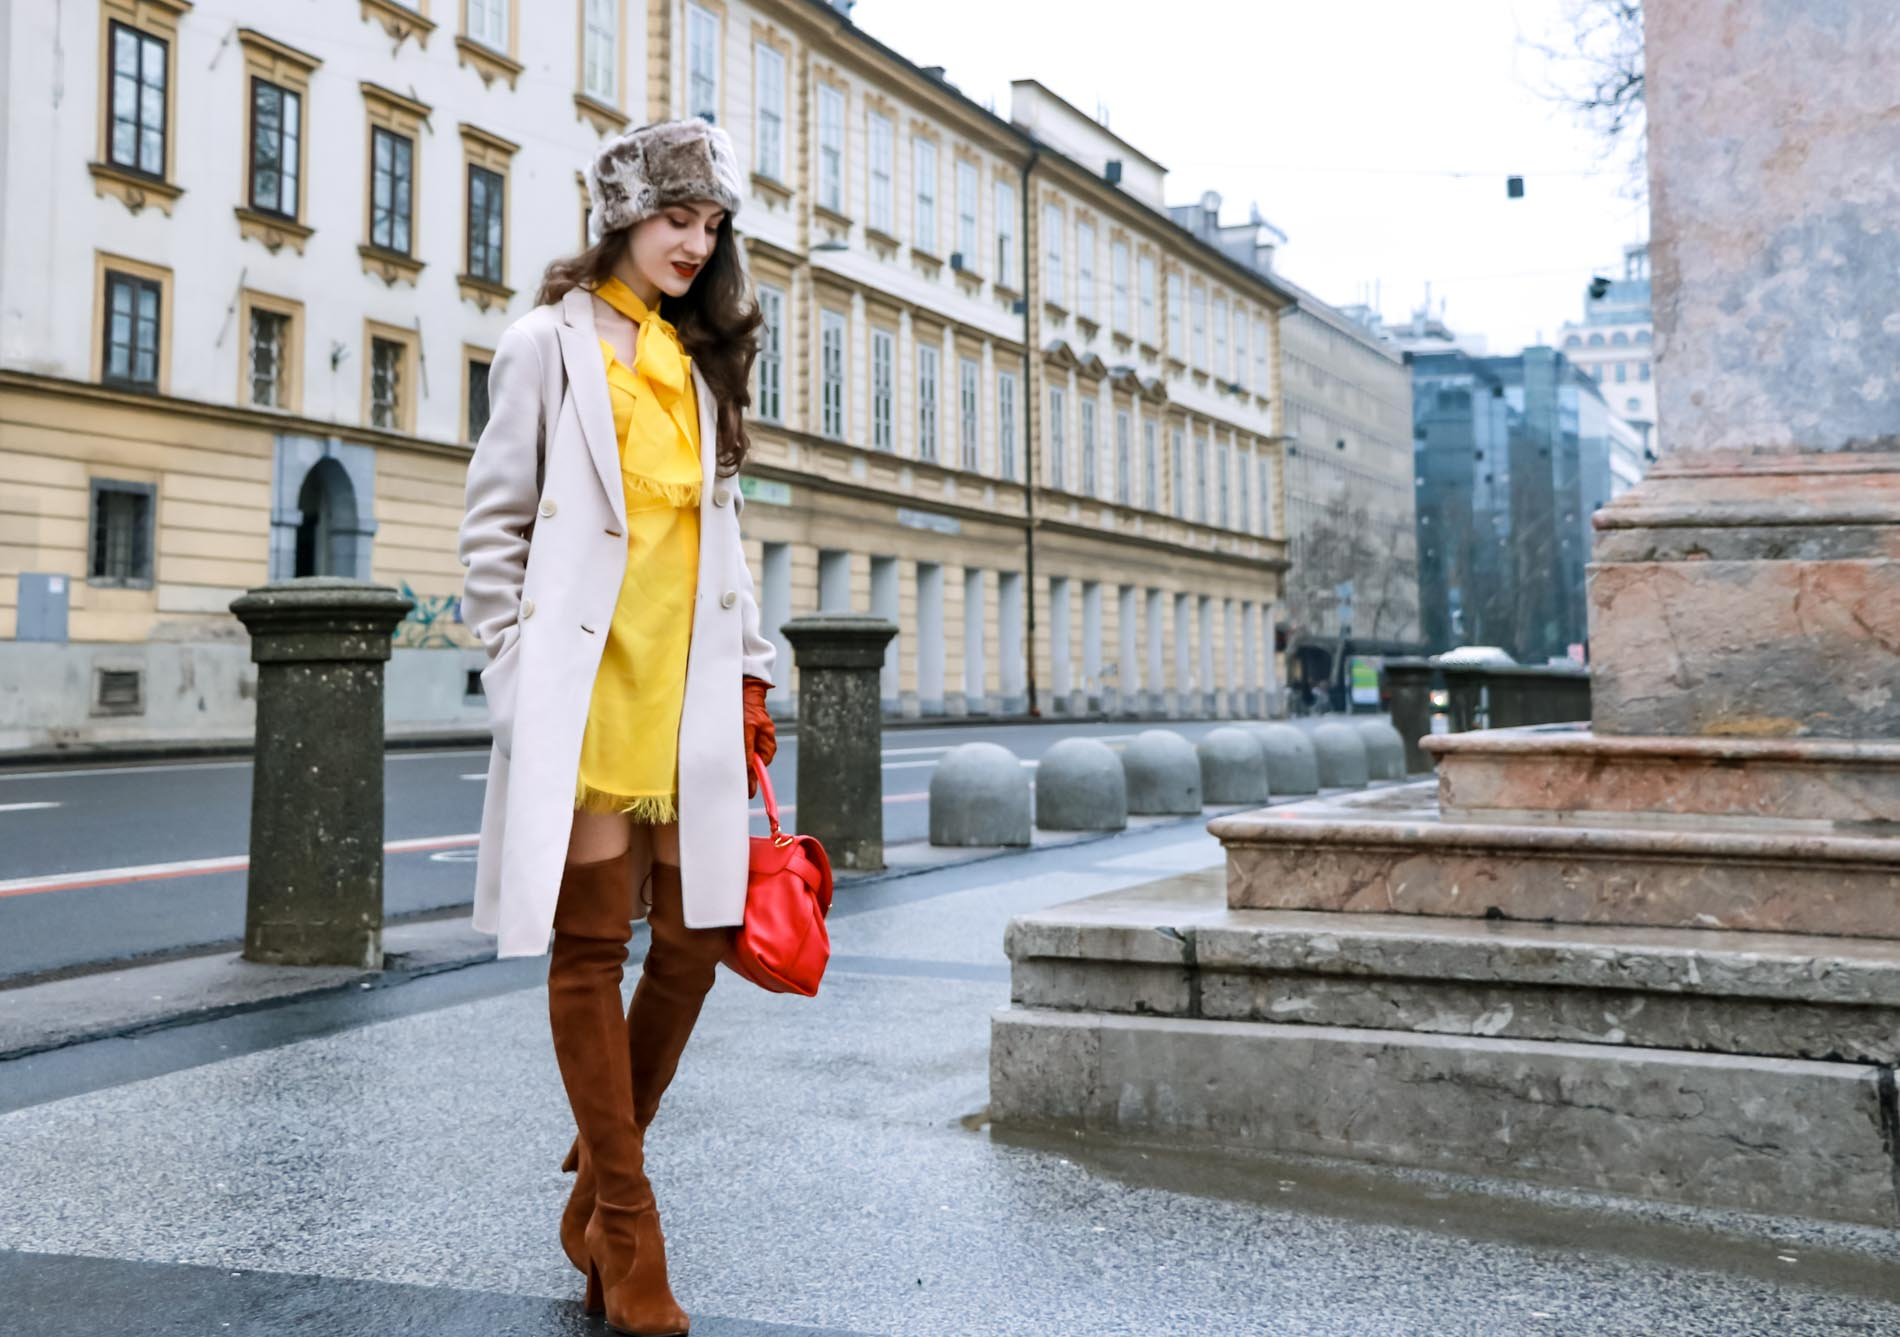 Fashion Blogger Veronika Lipar of Brunette from Wall Street dressed in the IT dress of spring summer 2018, the yellow dress from Escada, off-white, pastel double-breasted coat from Weekend Maxmara, pink top handle bag from See by Chloé, brown Stuart Weitzman over the knee boots, and faux fur headband in winter